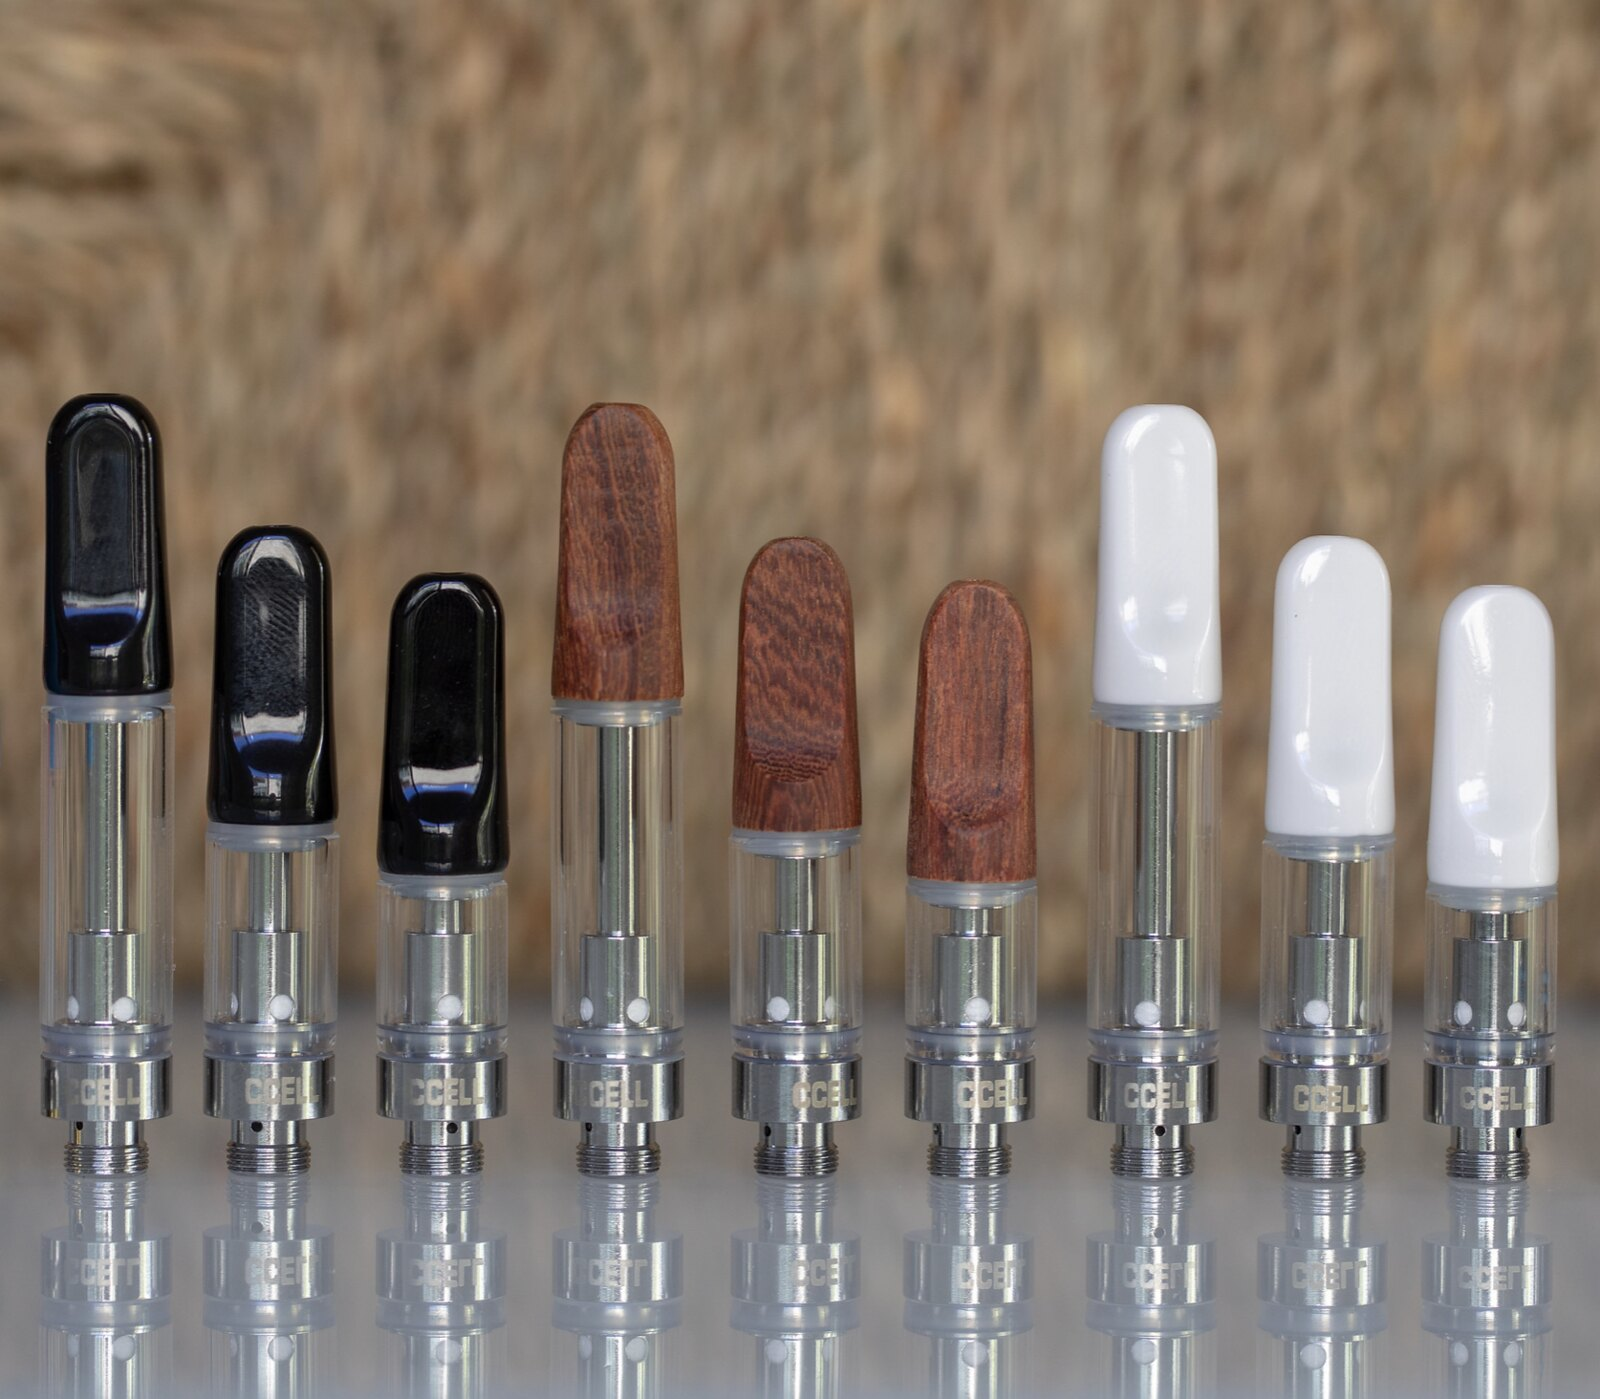 CCell TH2 oil cartridge options